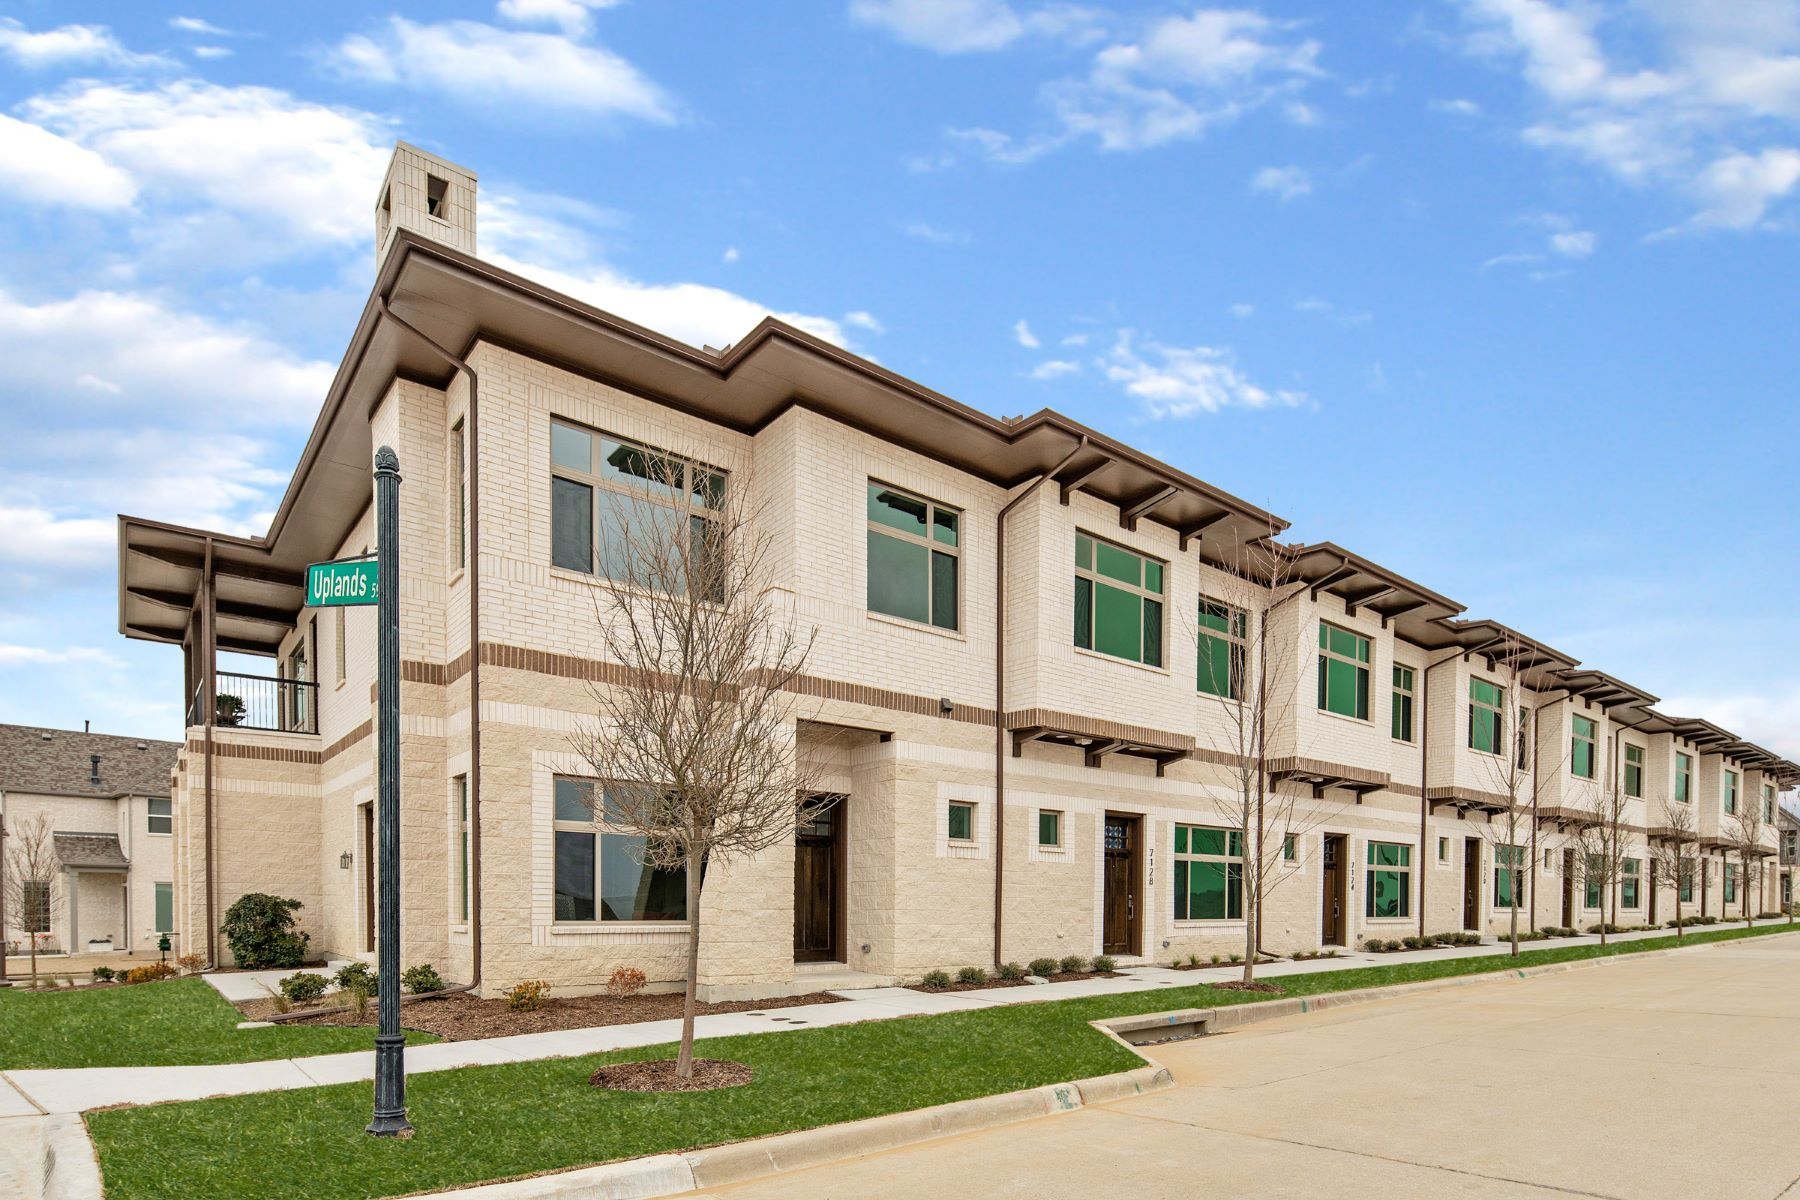 townhouses for Sale at 7108 Wessex Court, McKinney, TX, 75070 7108 Wessex Court McKinney, Texas 75070 United States